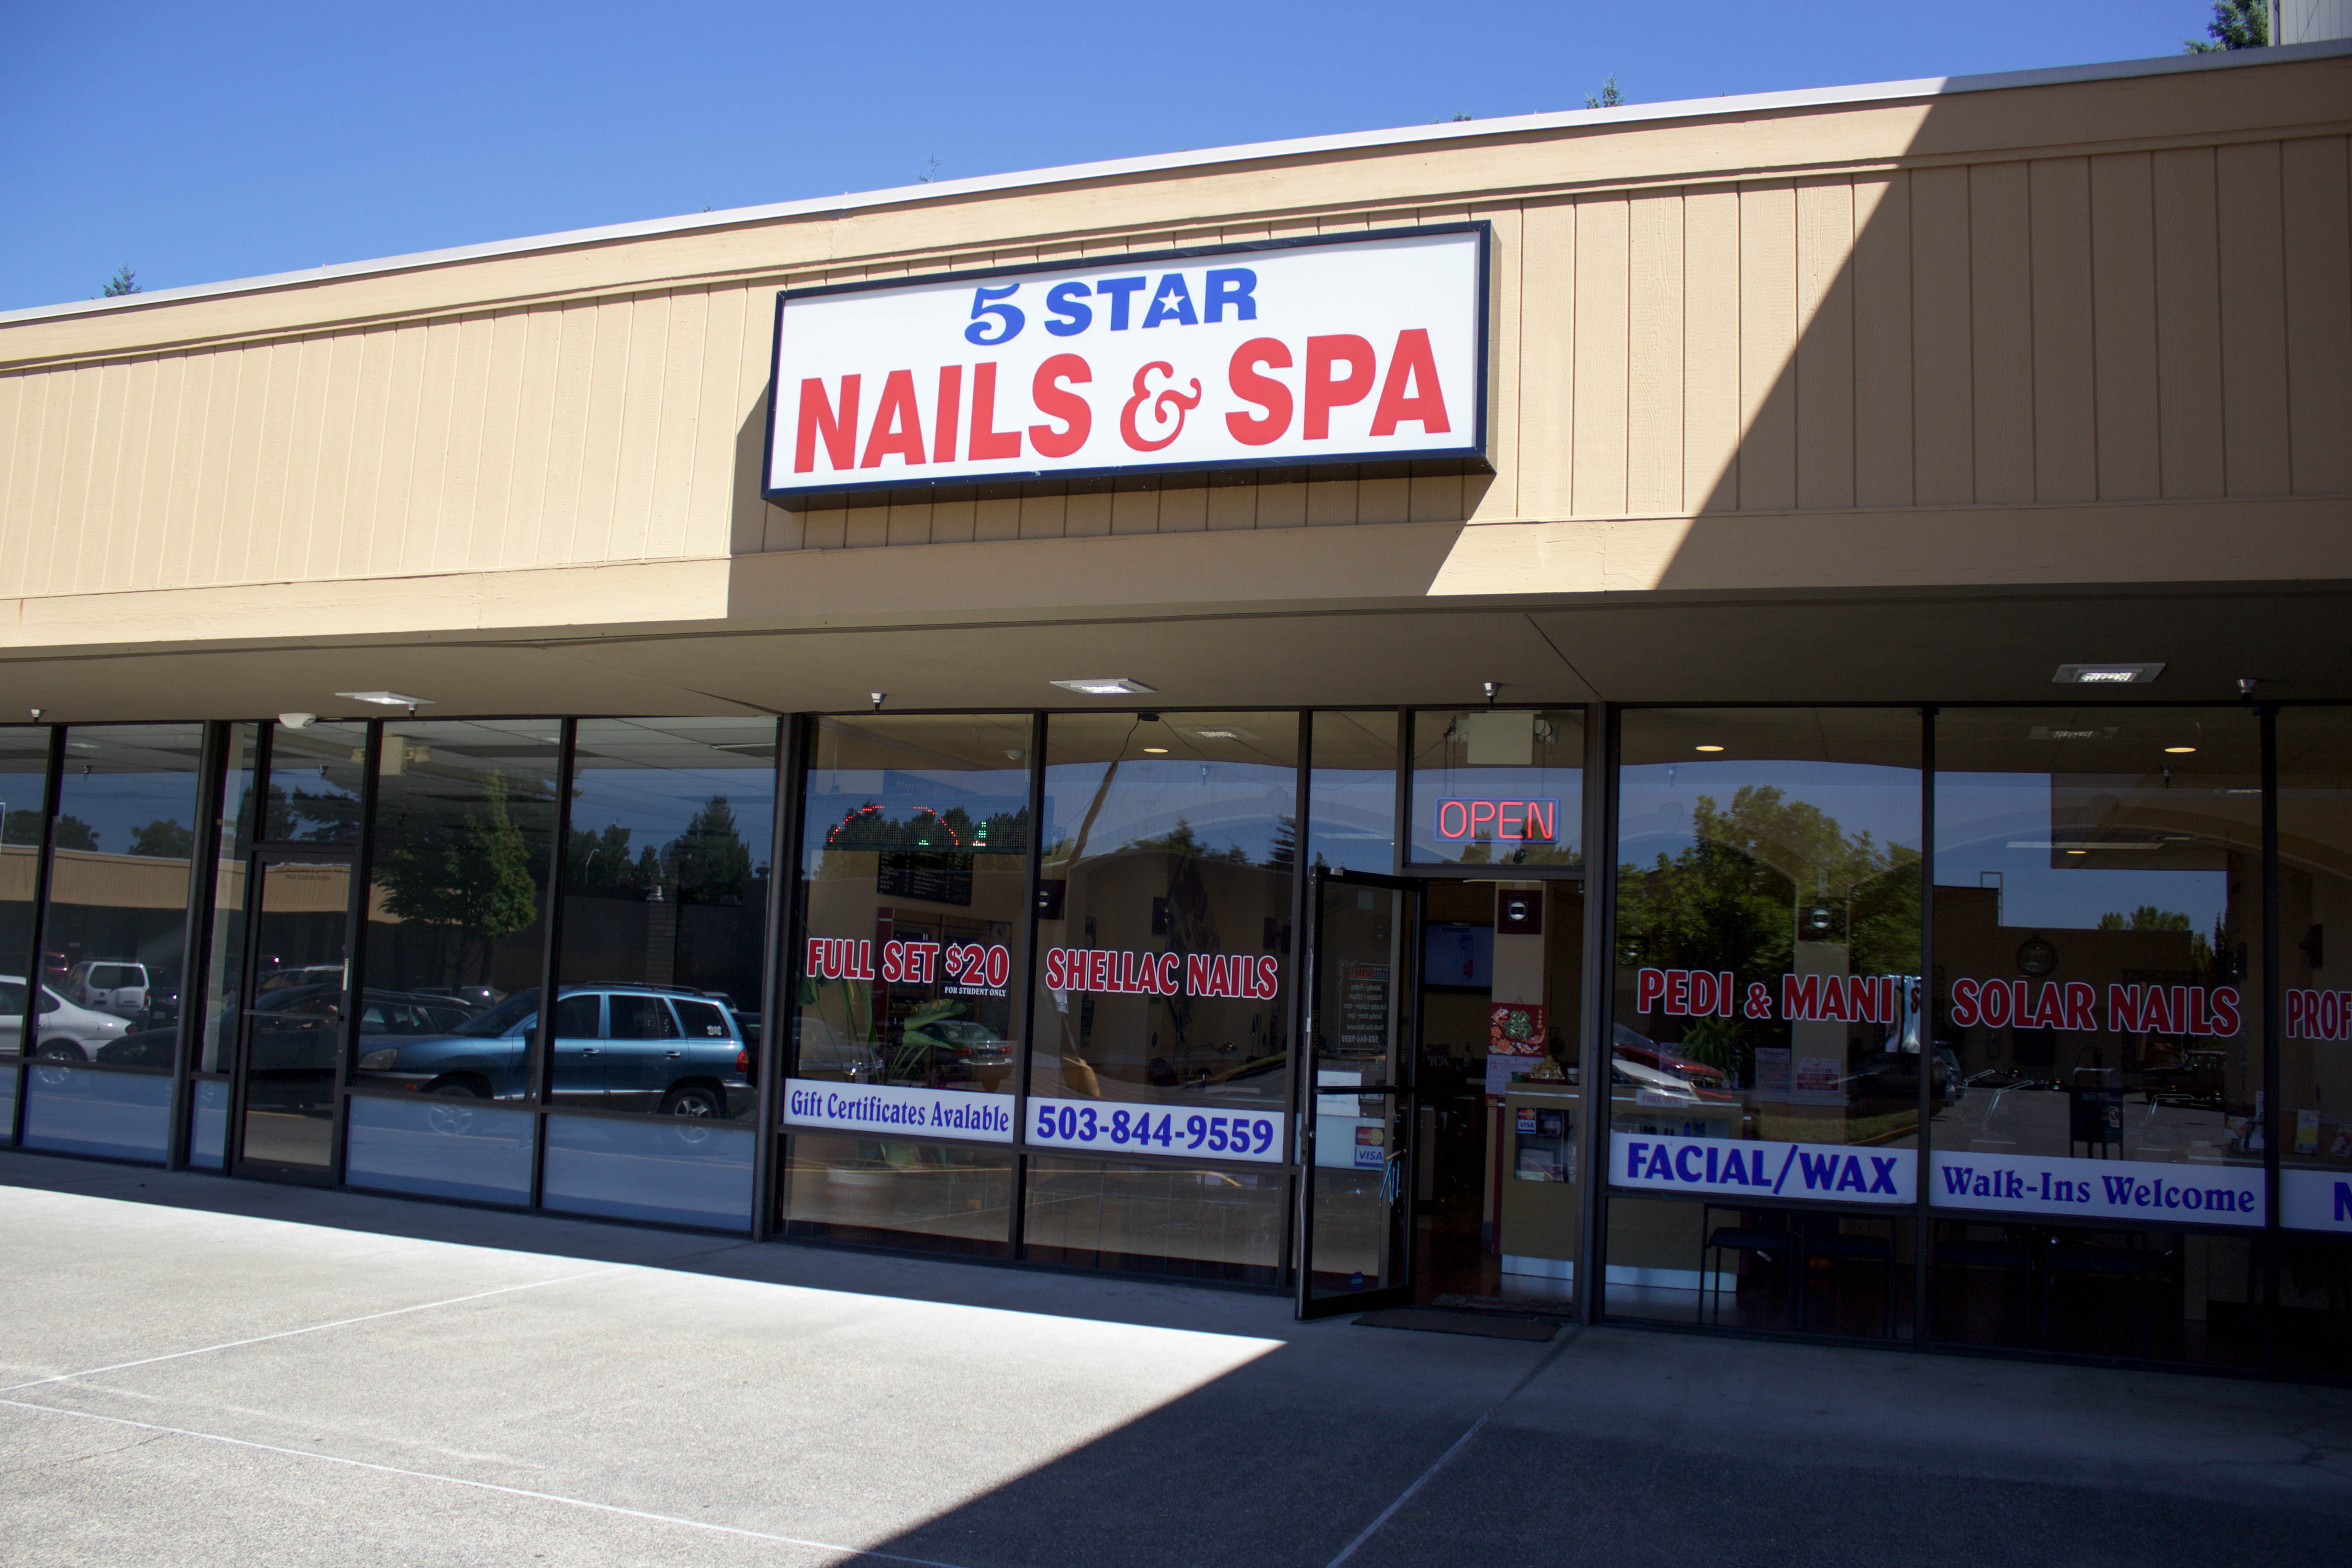 About – 5 Star Nails & Spa